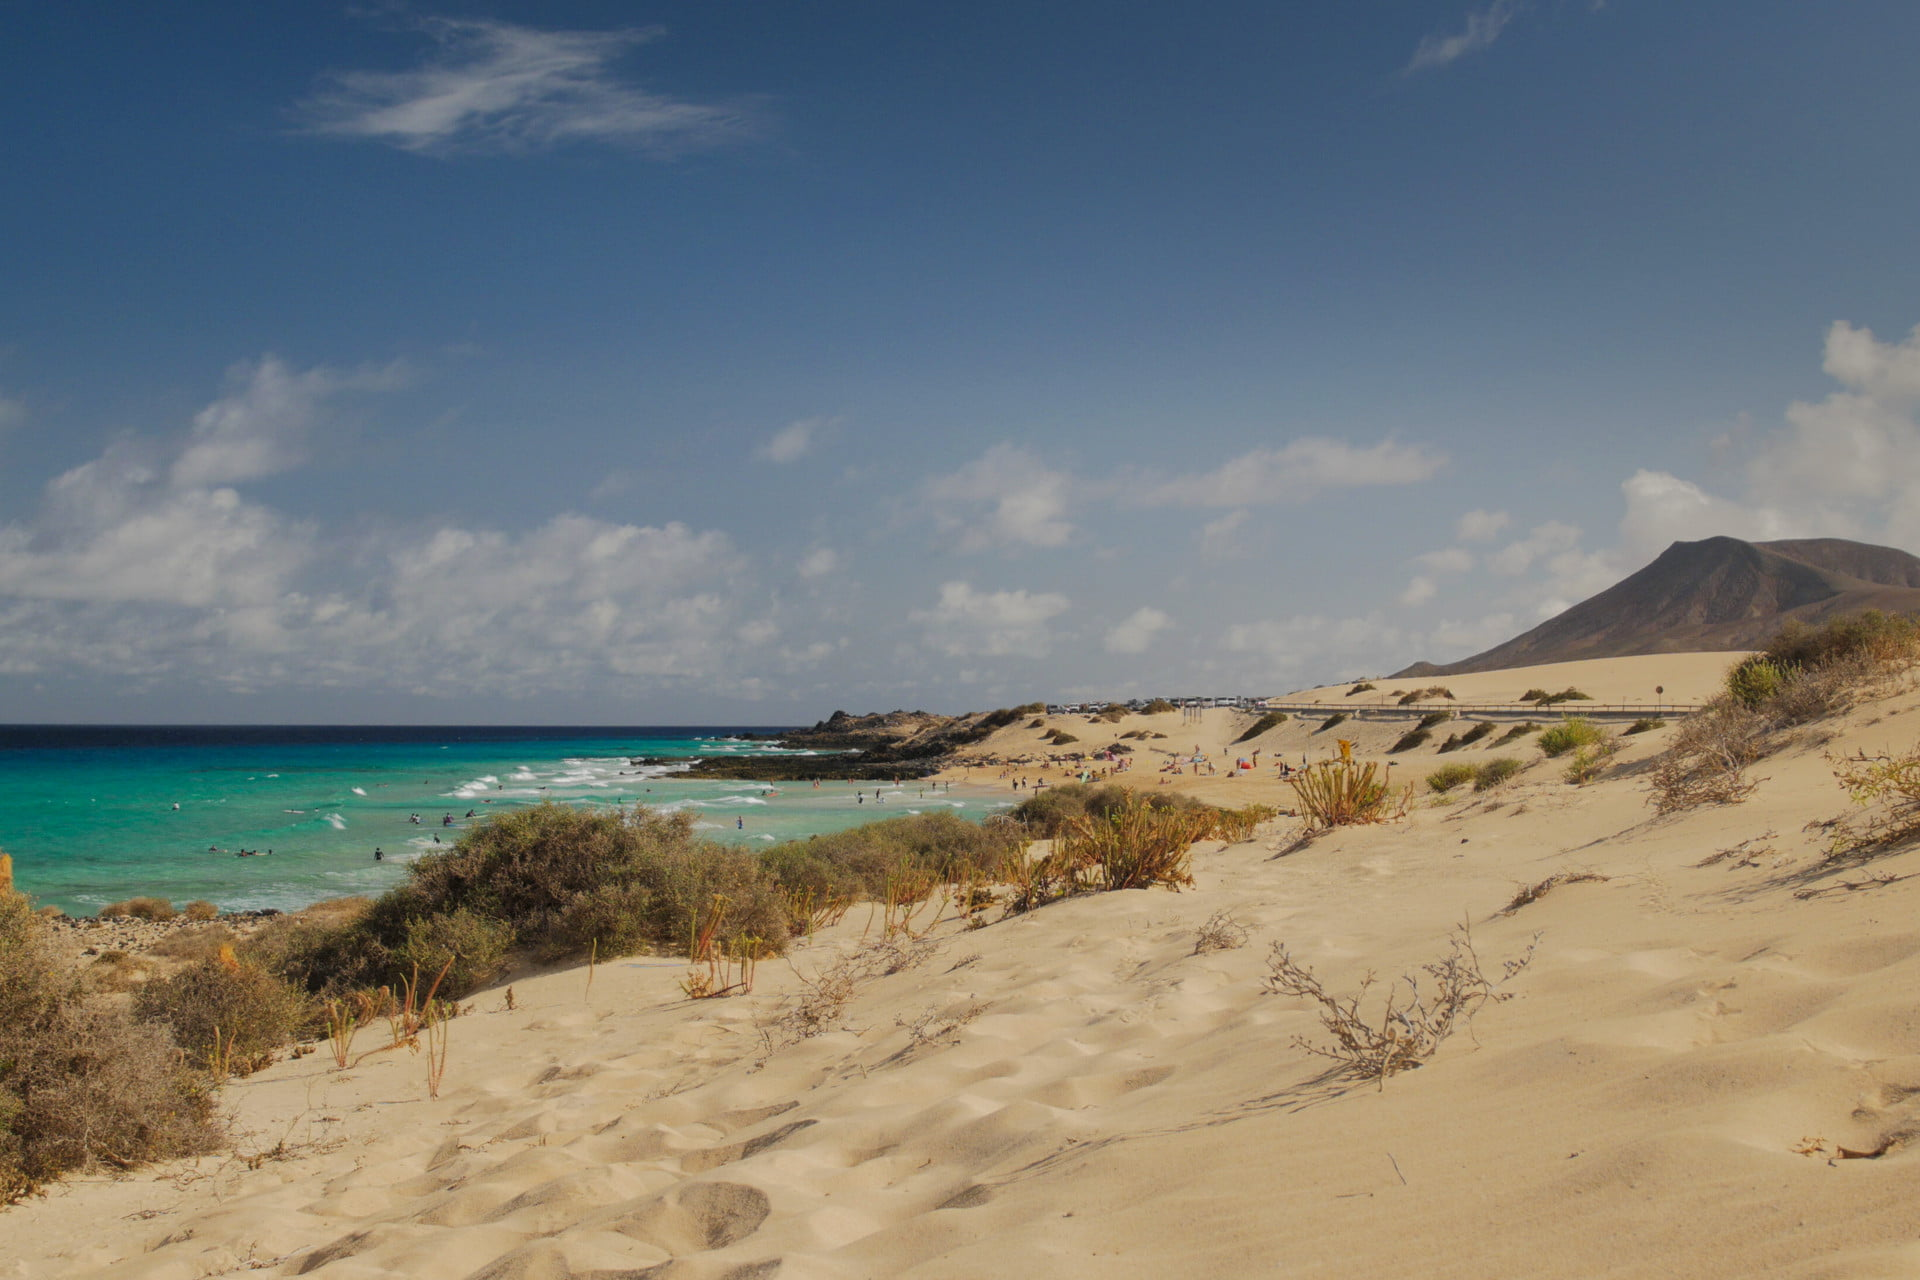 Beach in the Parque Natural de Corralejo